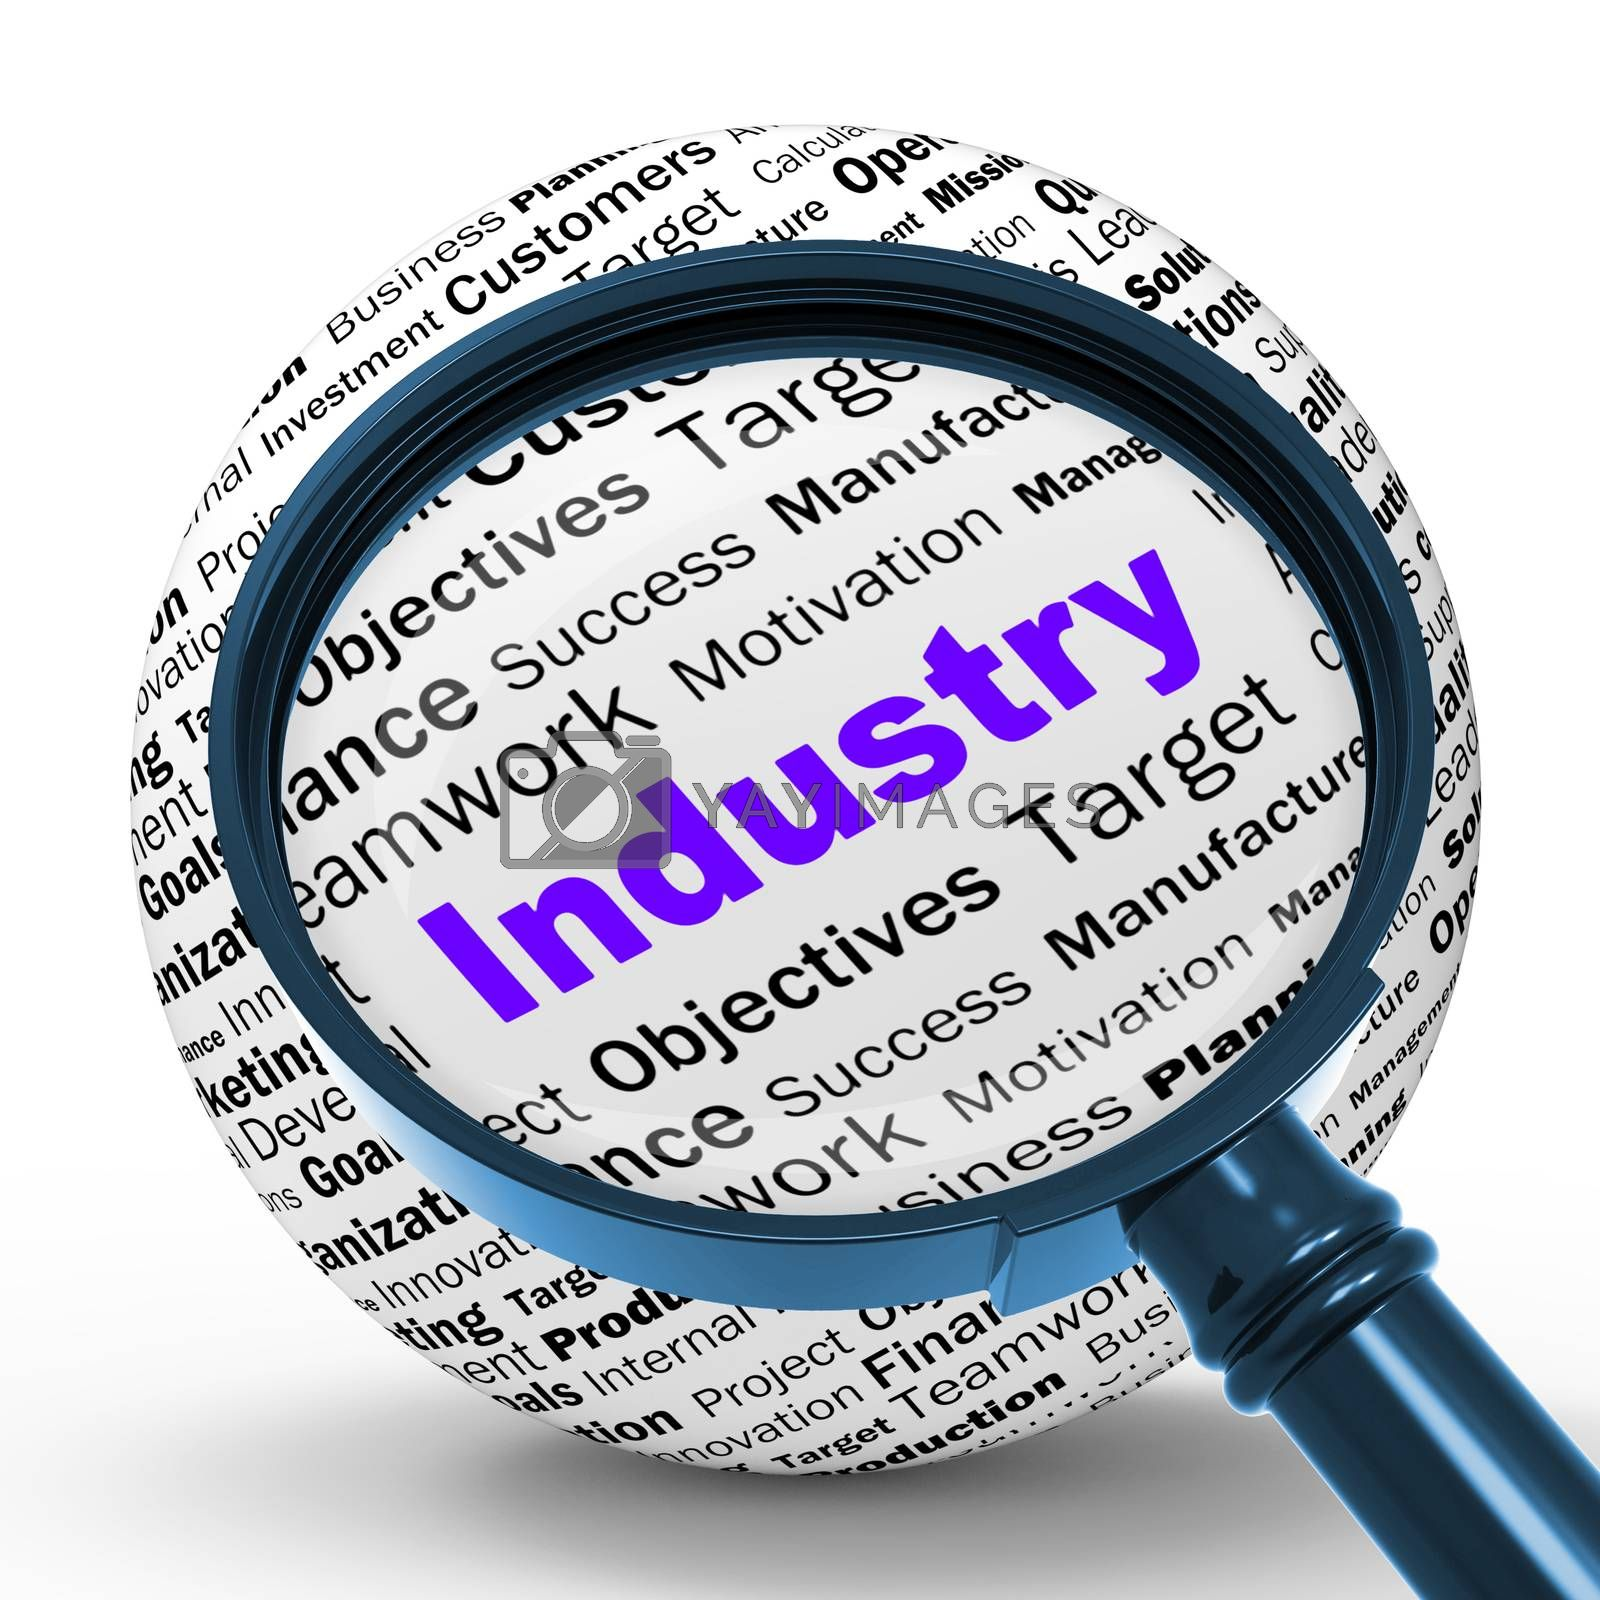 Industry Magnifier Definition Means Local Production Or Engineer by stuartmiles